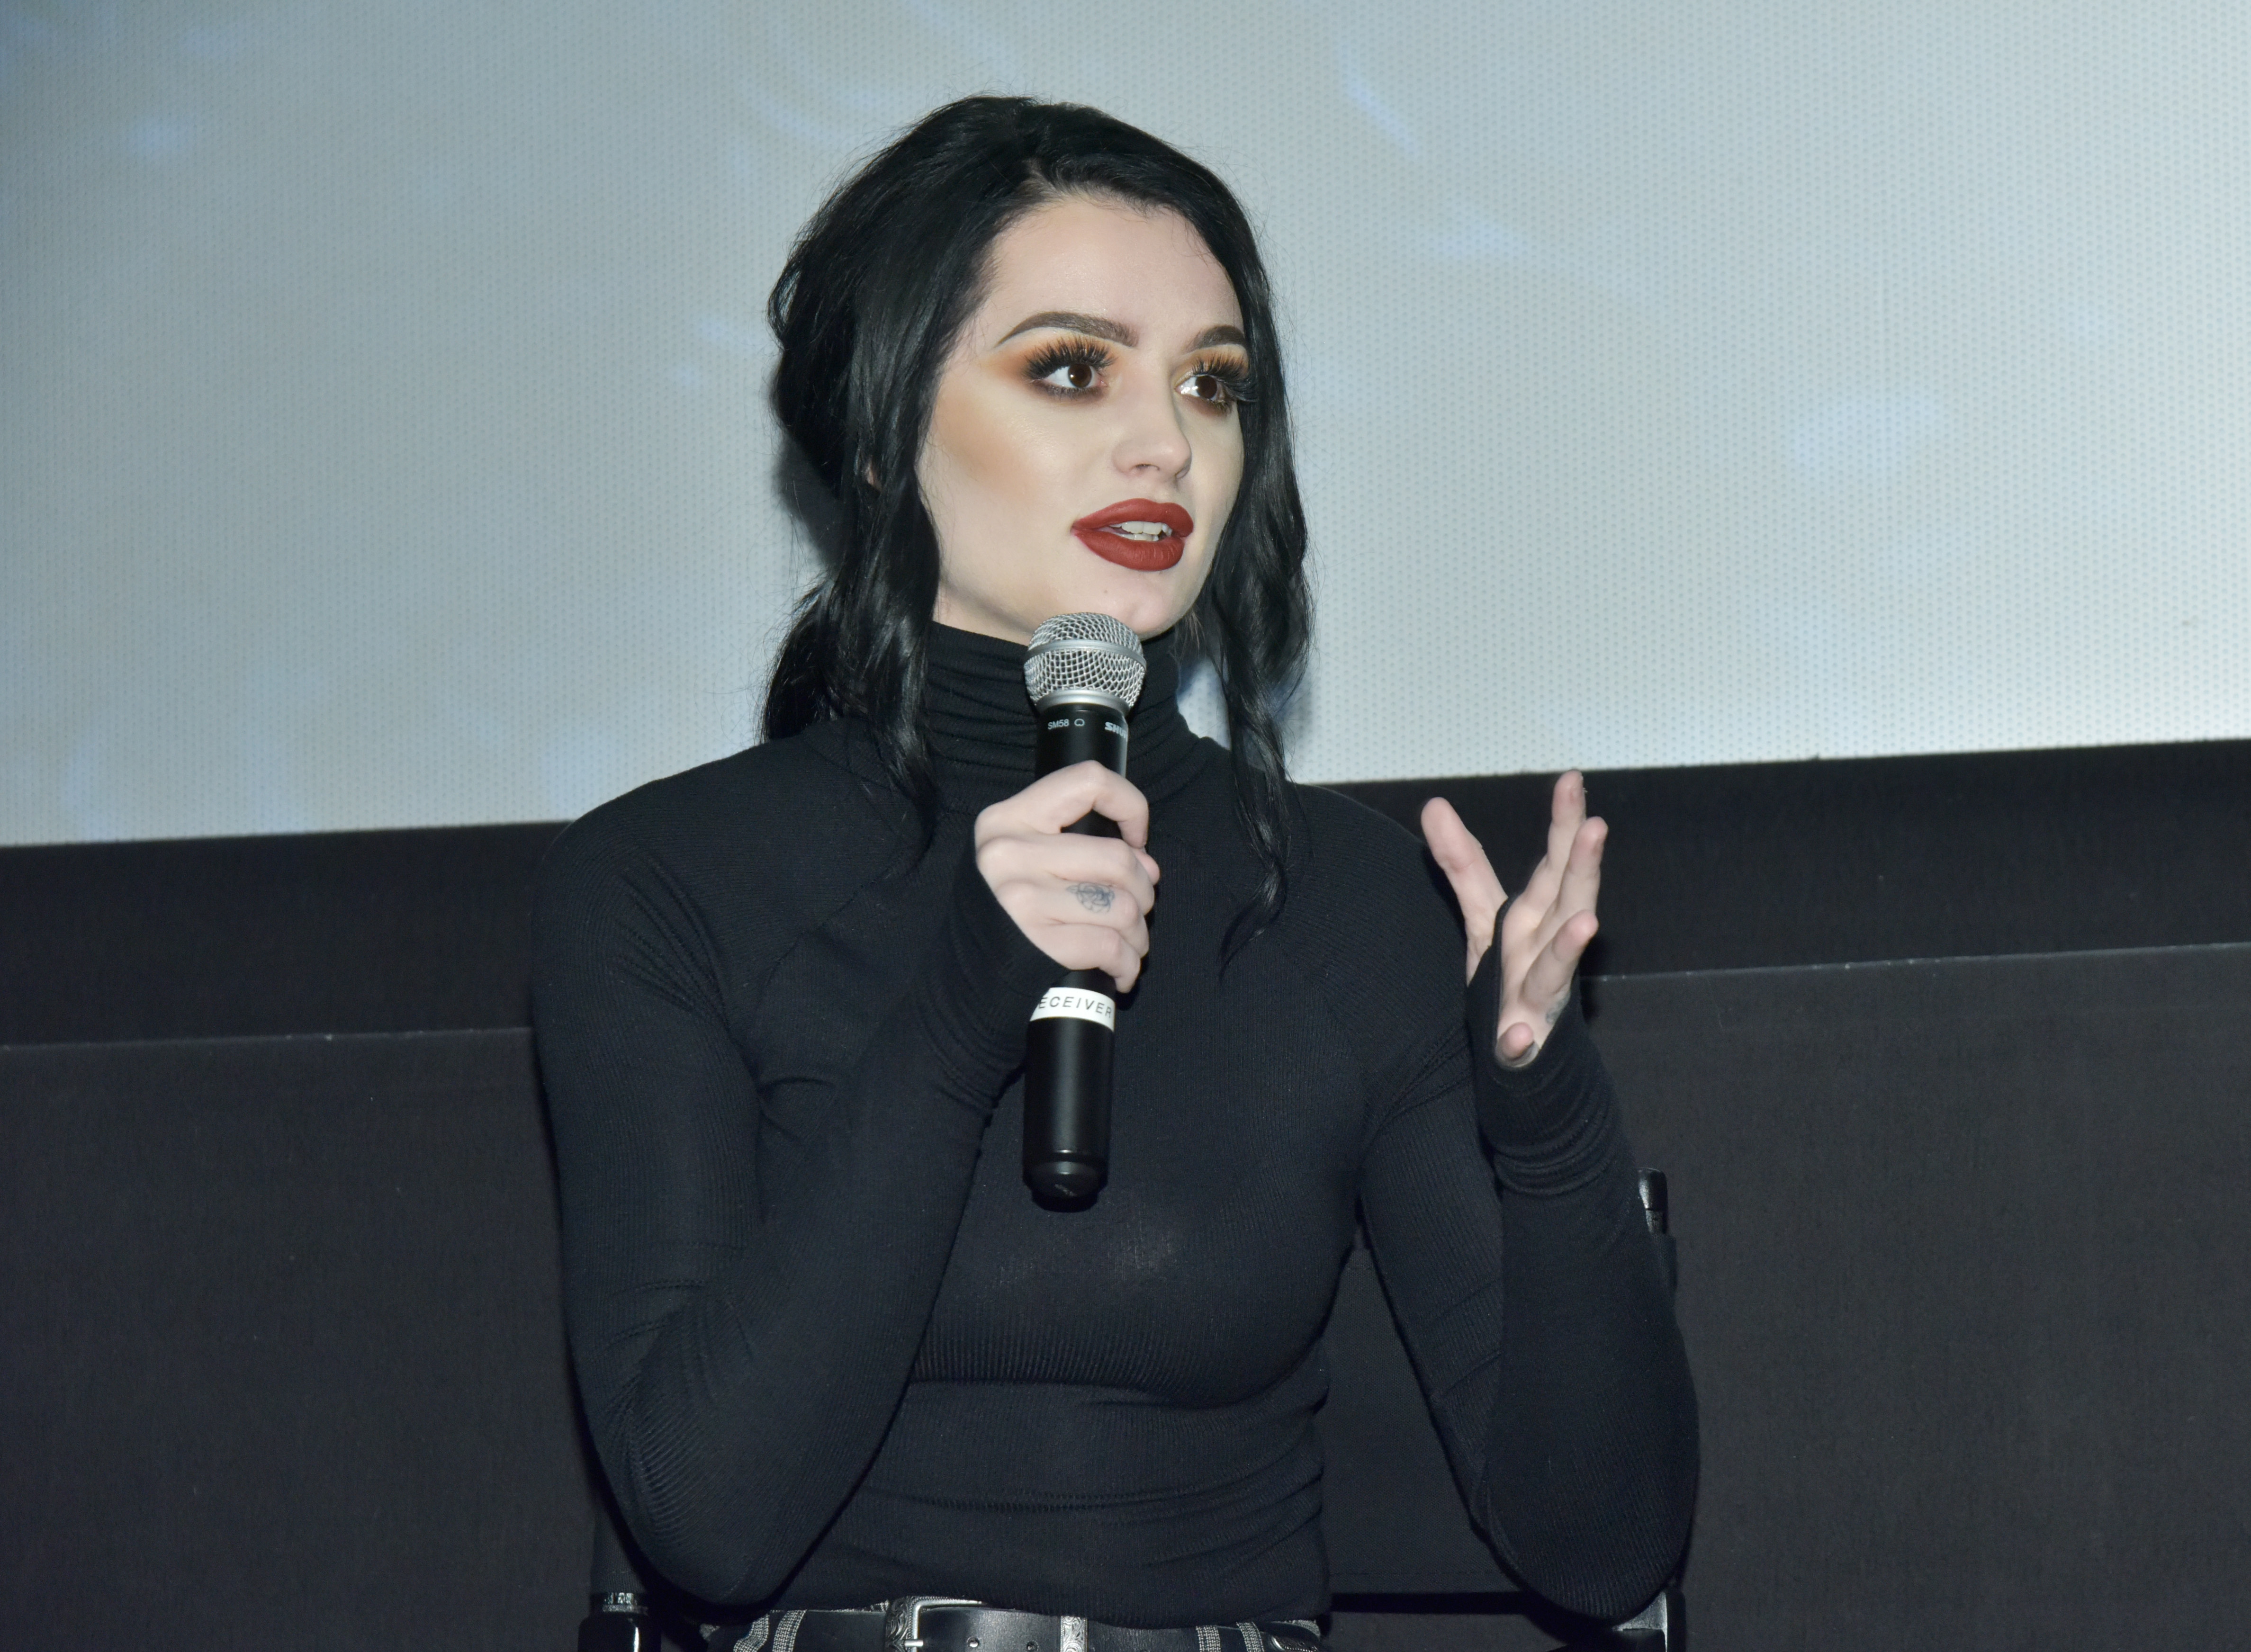 WWE Wrestler Paige speaks at MGM Studios, WWE, and SheIs special screening of 'Fighting With My Family' at AMC 34th Street on February 12, 2019 in New York City. (Getty Images)